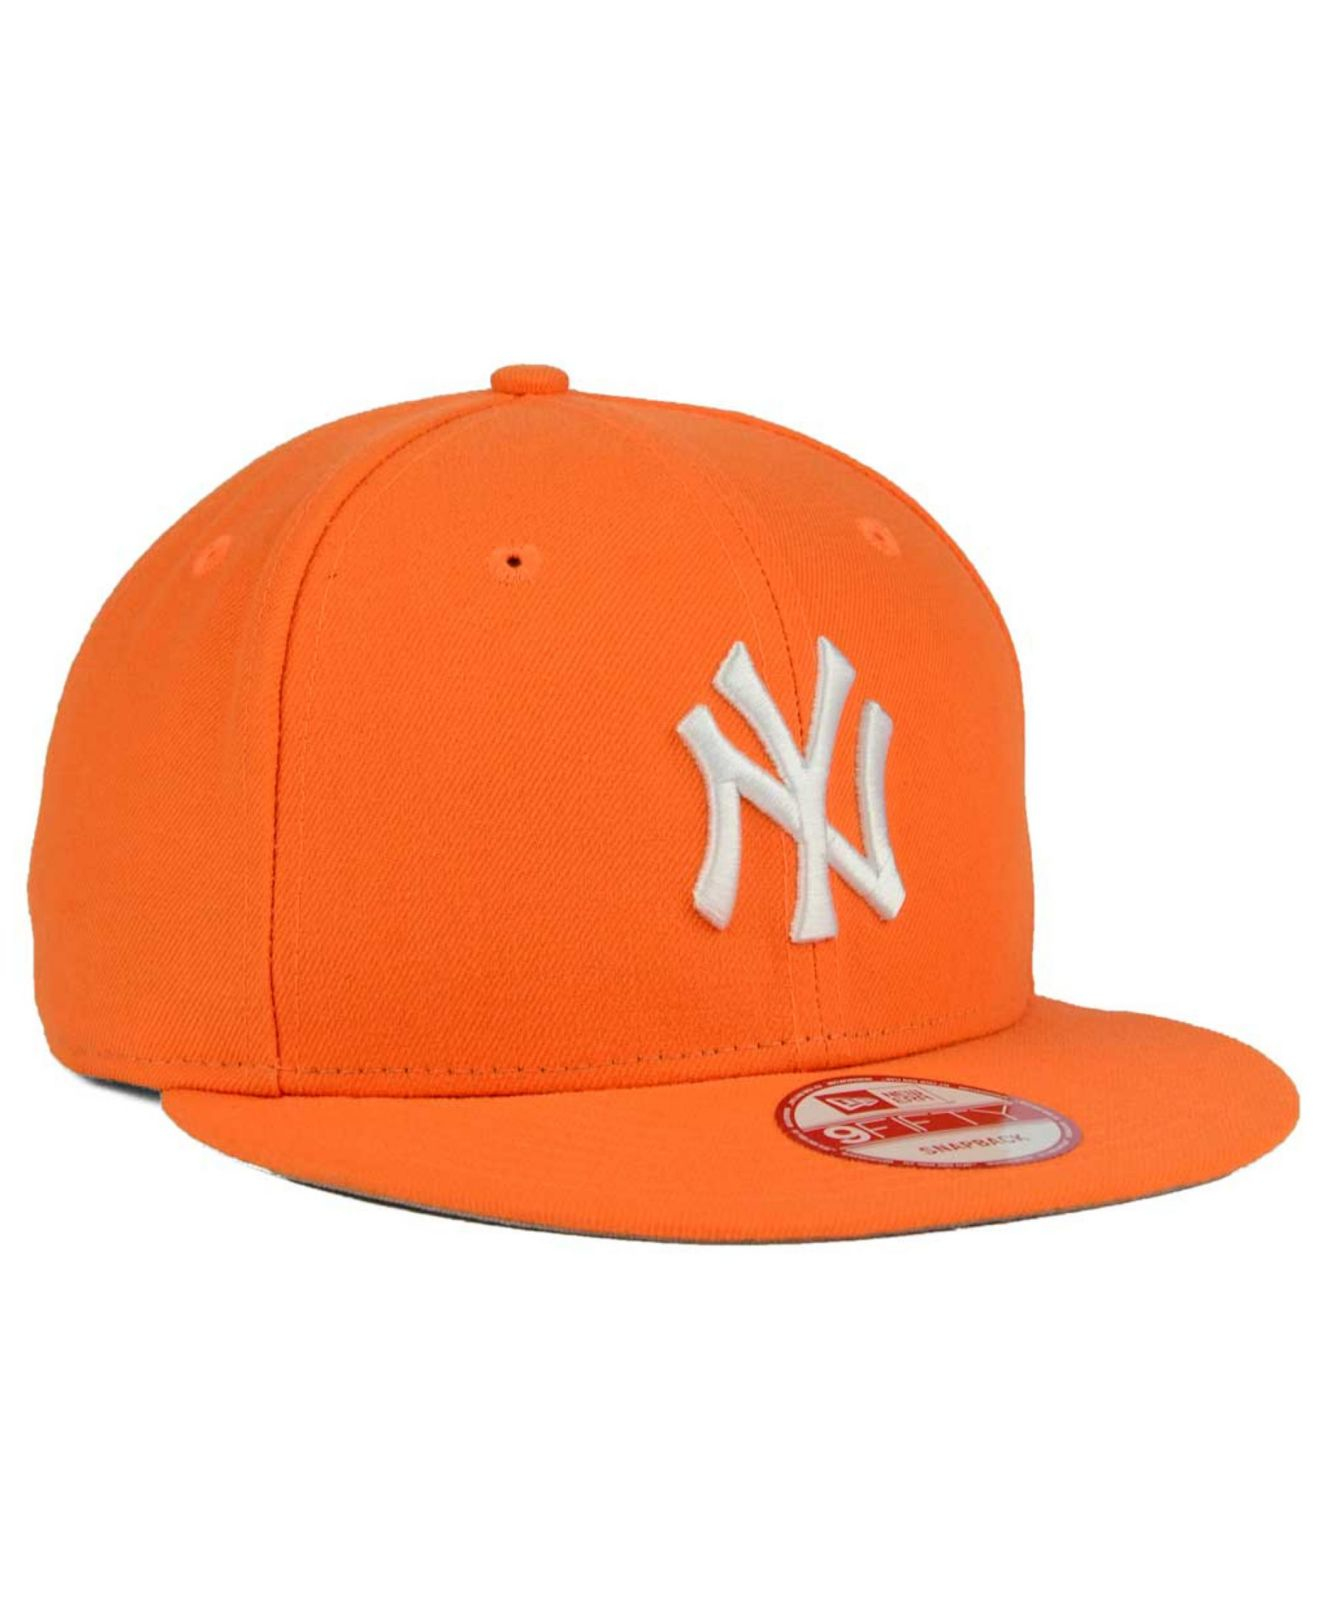 finest selection 1e0e7 f89d7 ... coupon era fitted hat 59fifty lyst ktz new york yankees c dub 9fifty  snapback cap in ...